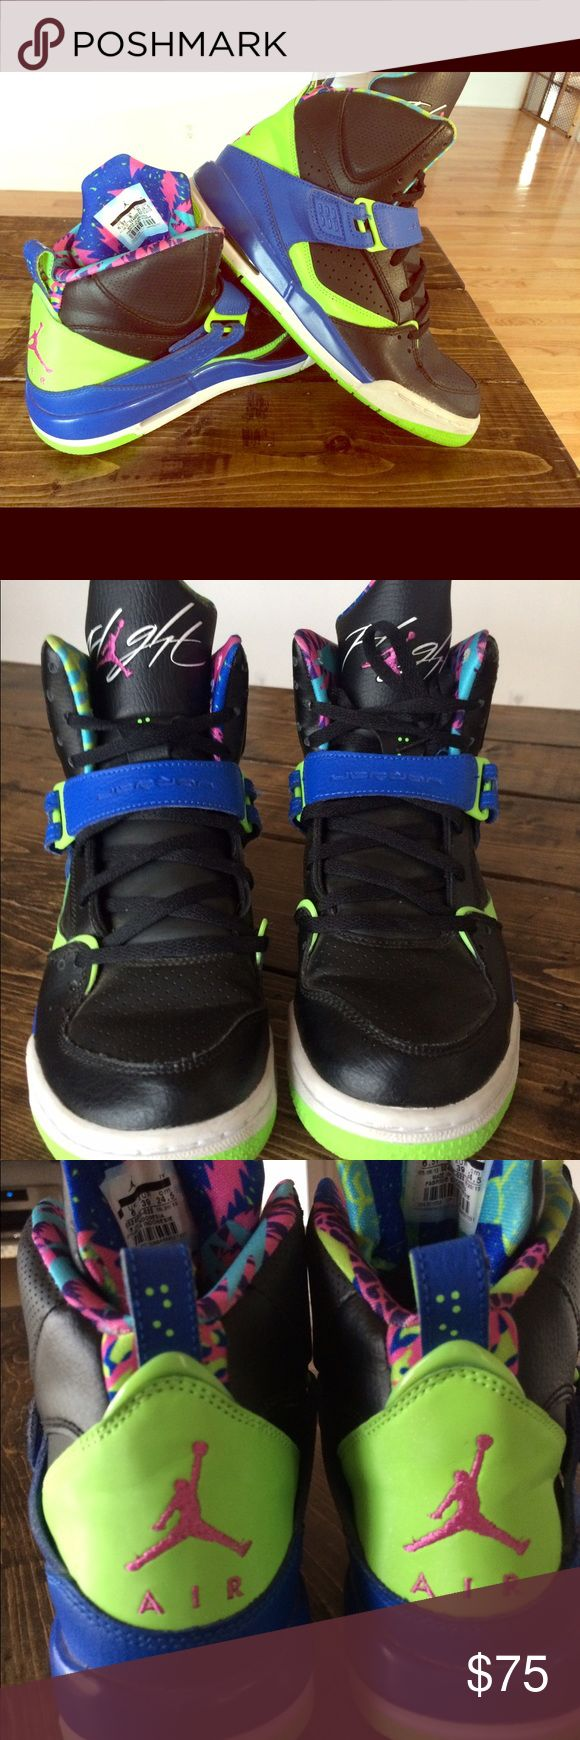 Bel Air Flight Jordan's Retro 90s Geometric Shoes Funky Bel Air Jordan's with neon colors and geometrical shapes. Has some creases on the toes as seen in picture. Sz 6.5Y/M, 8W, or 39 EU Jordan Shoes Athletic Shoes